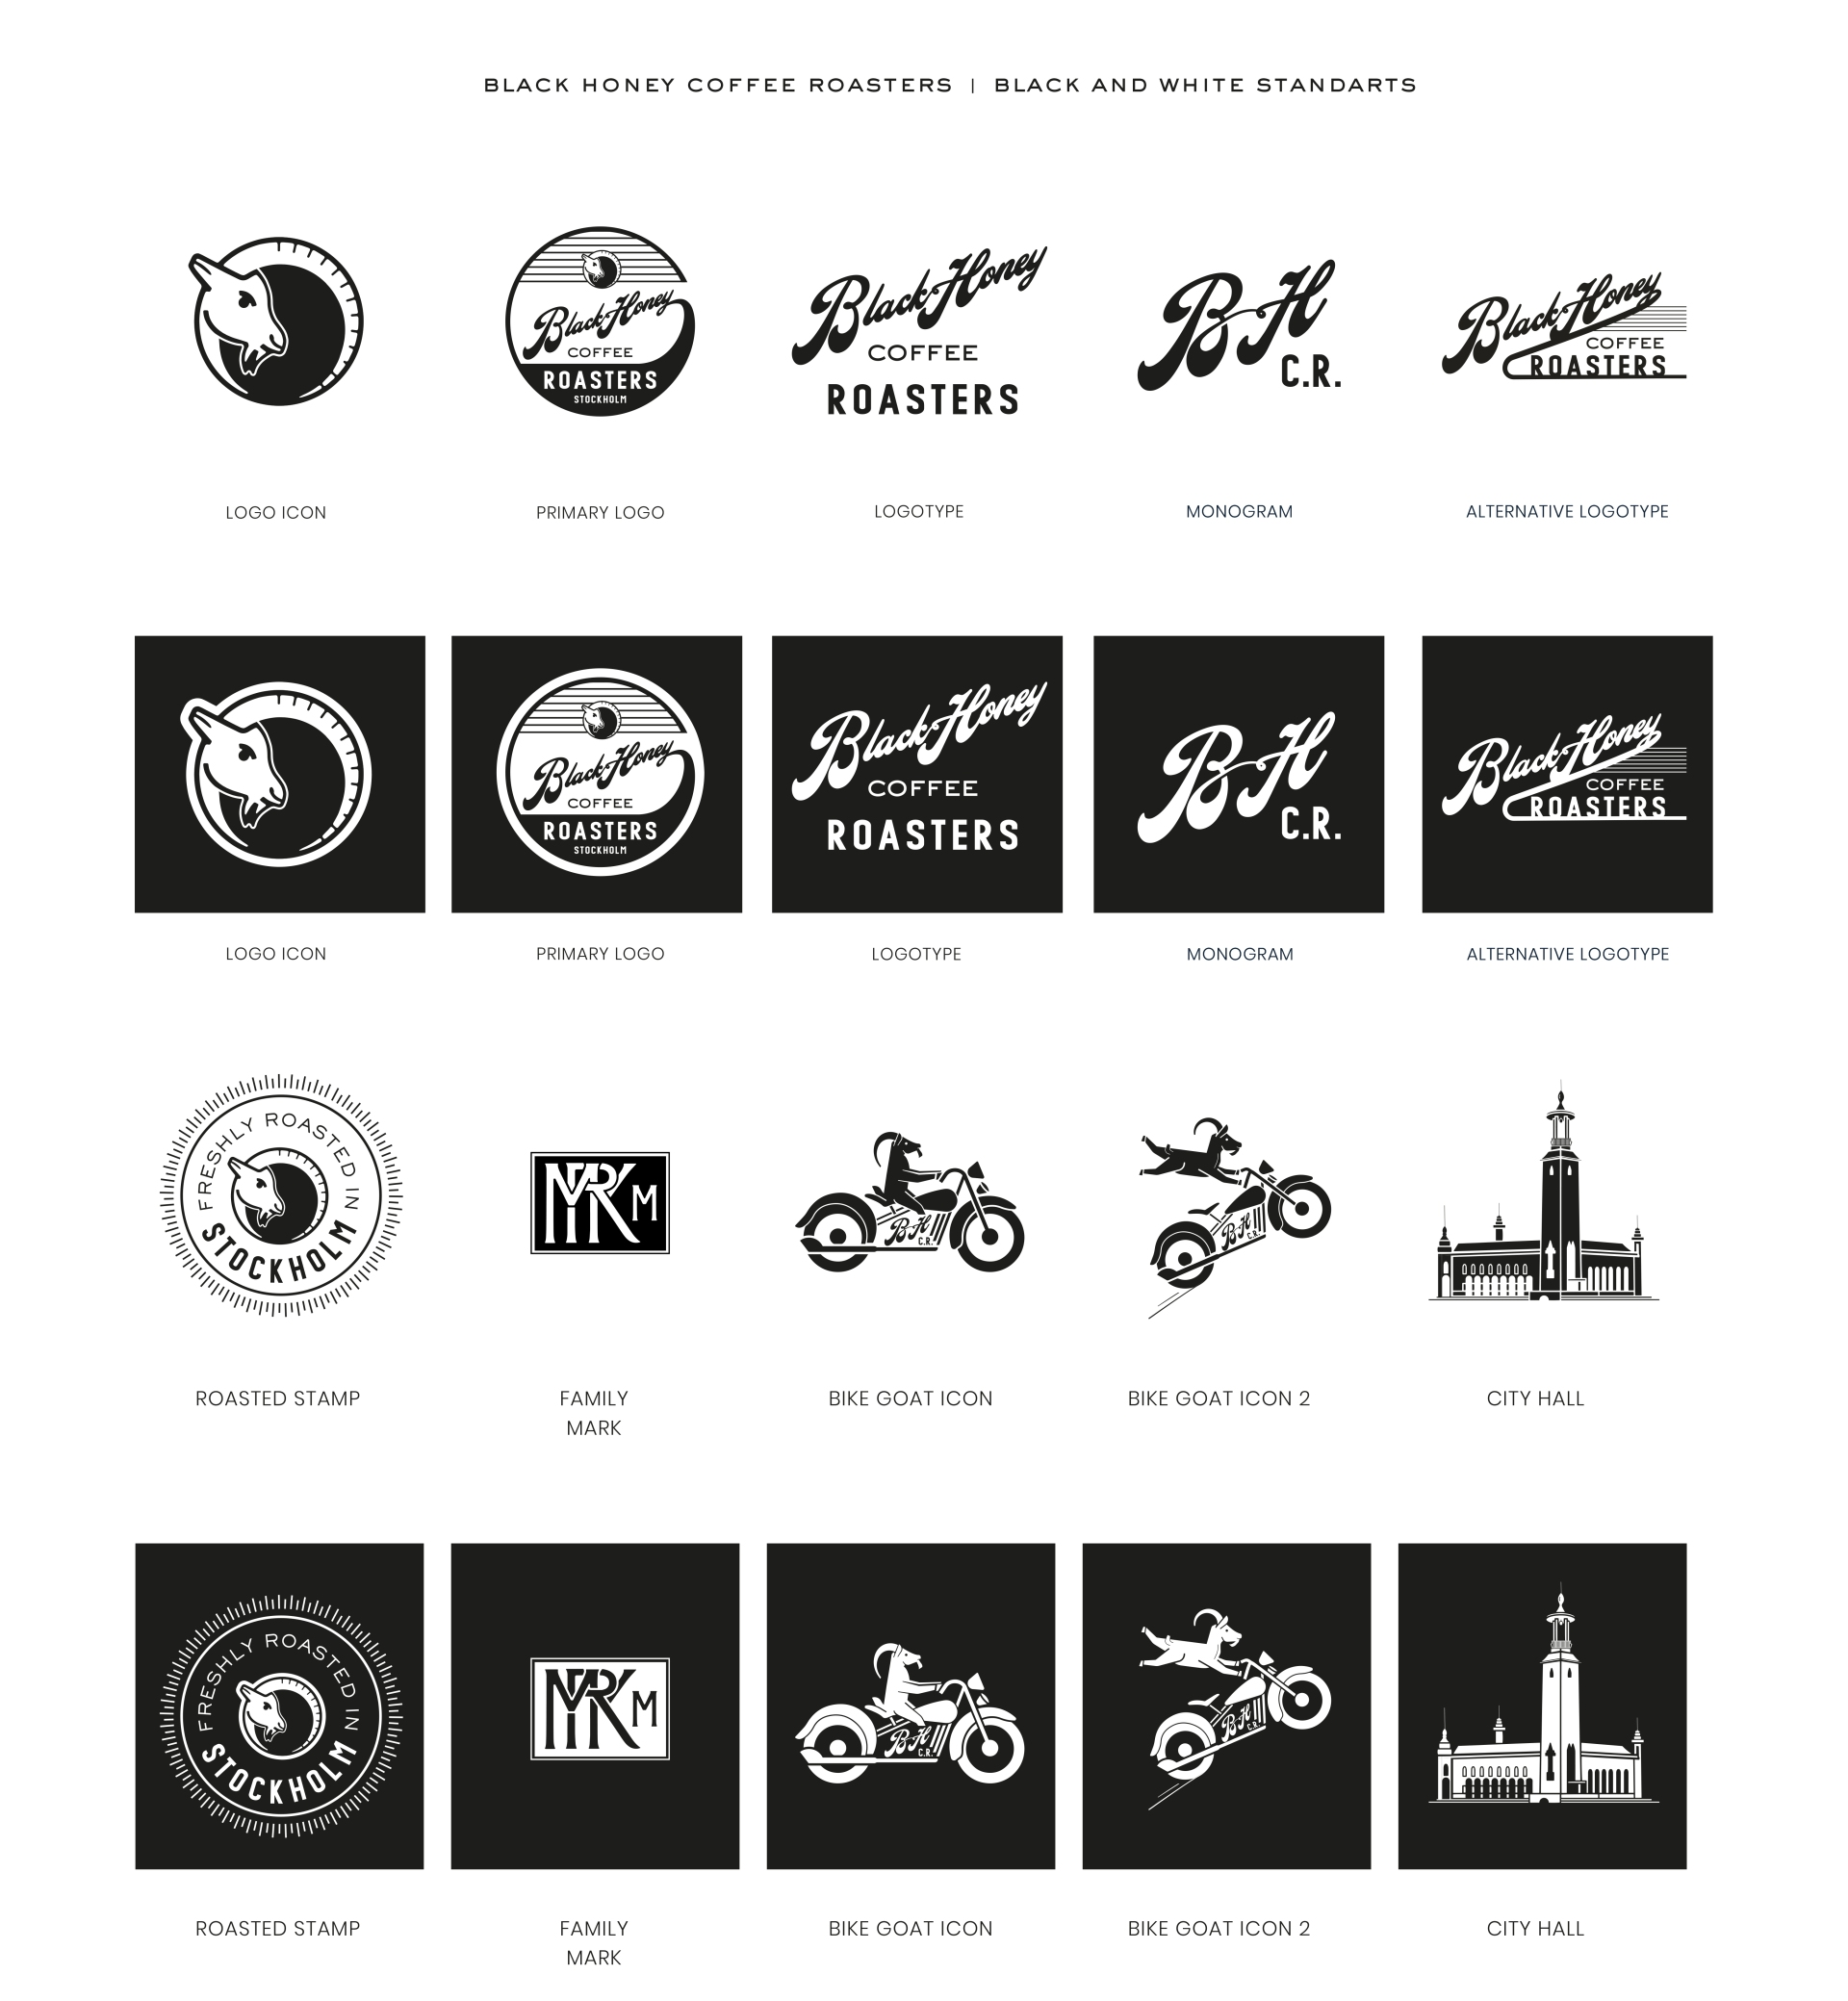 Exclusive Mockups for Branding and Packaging Design